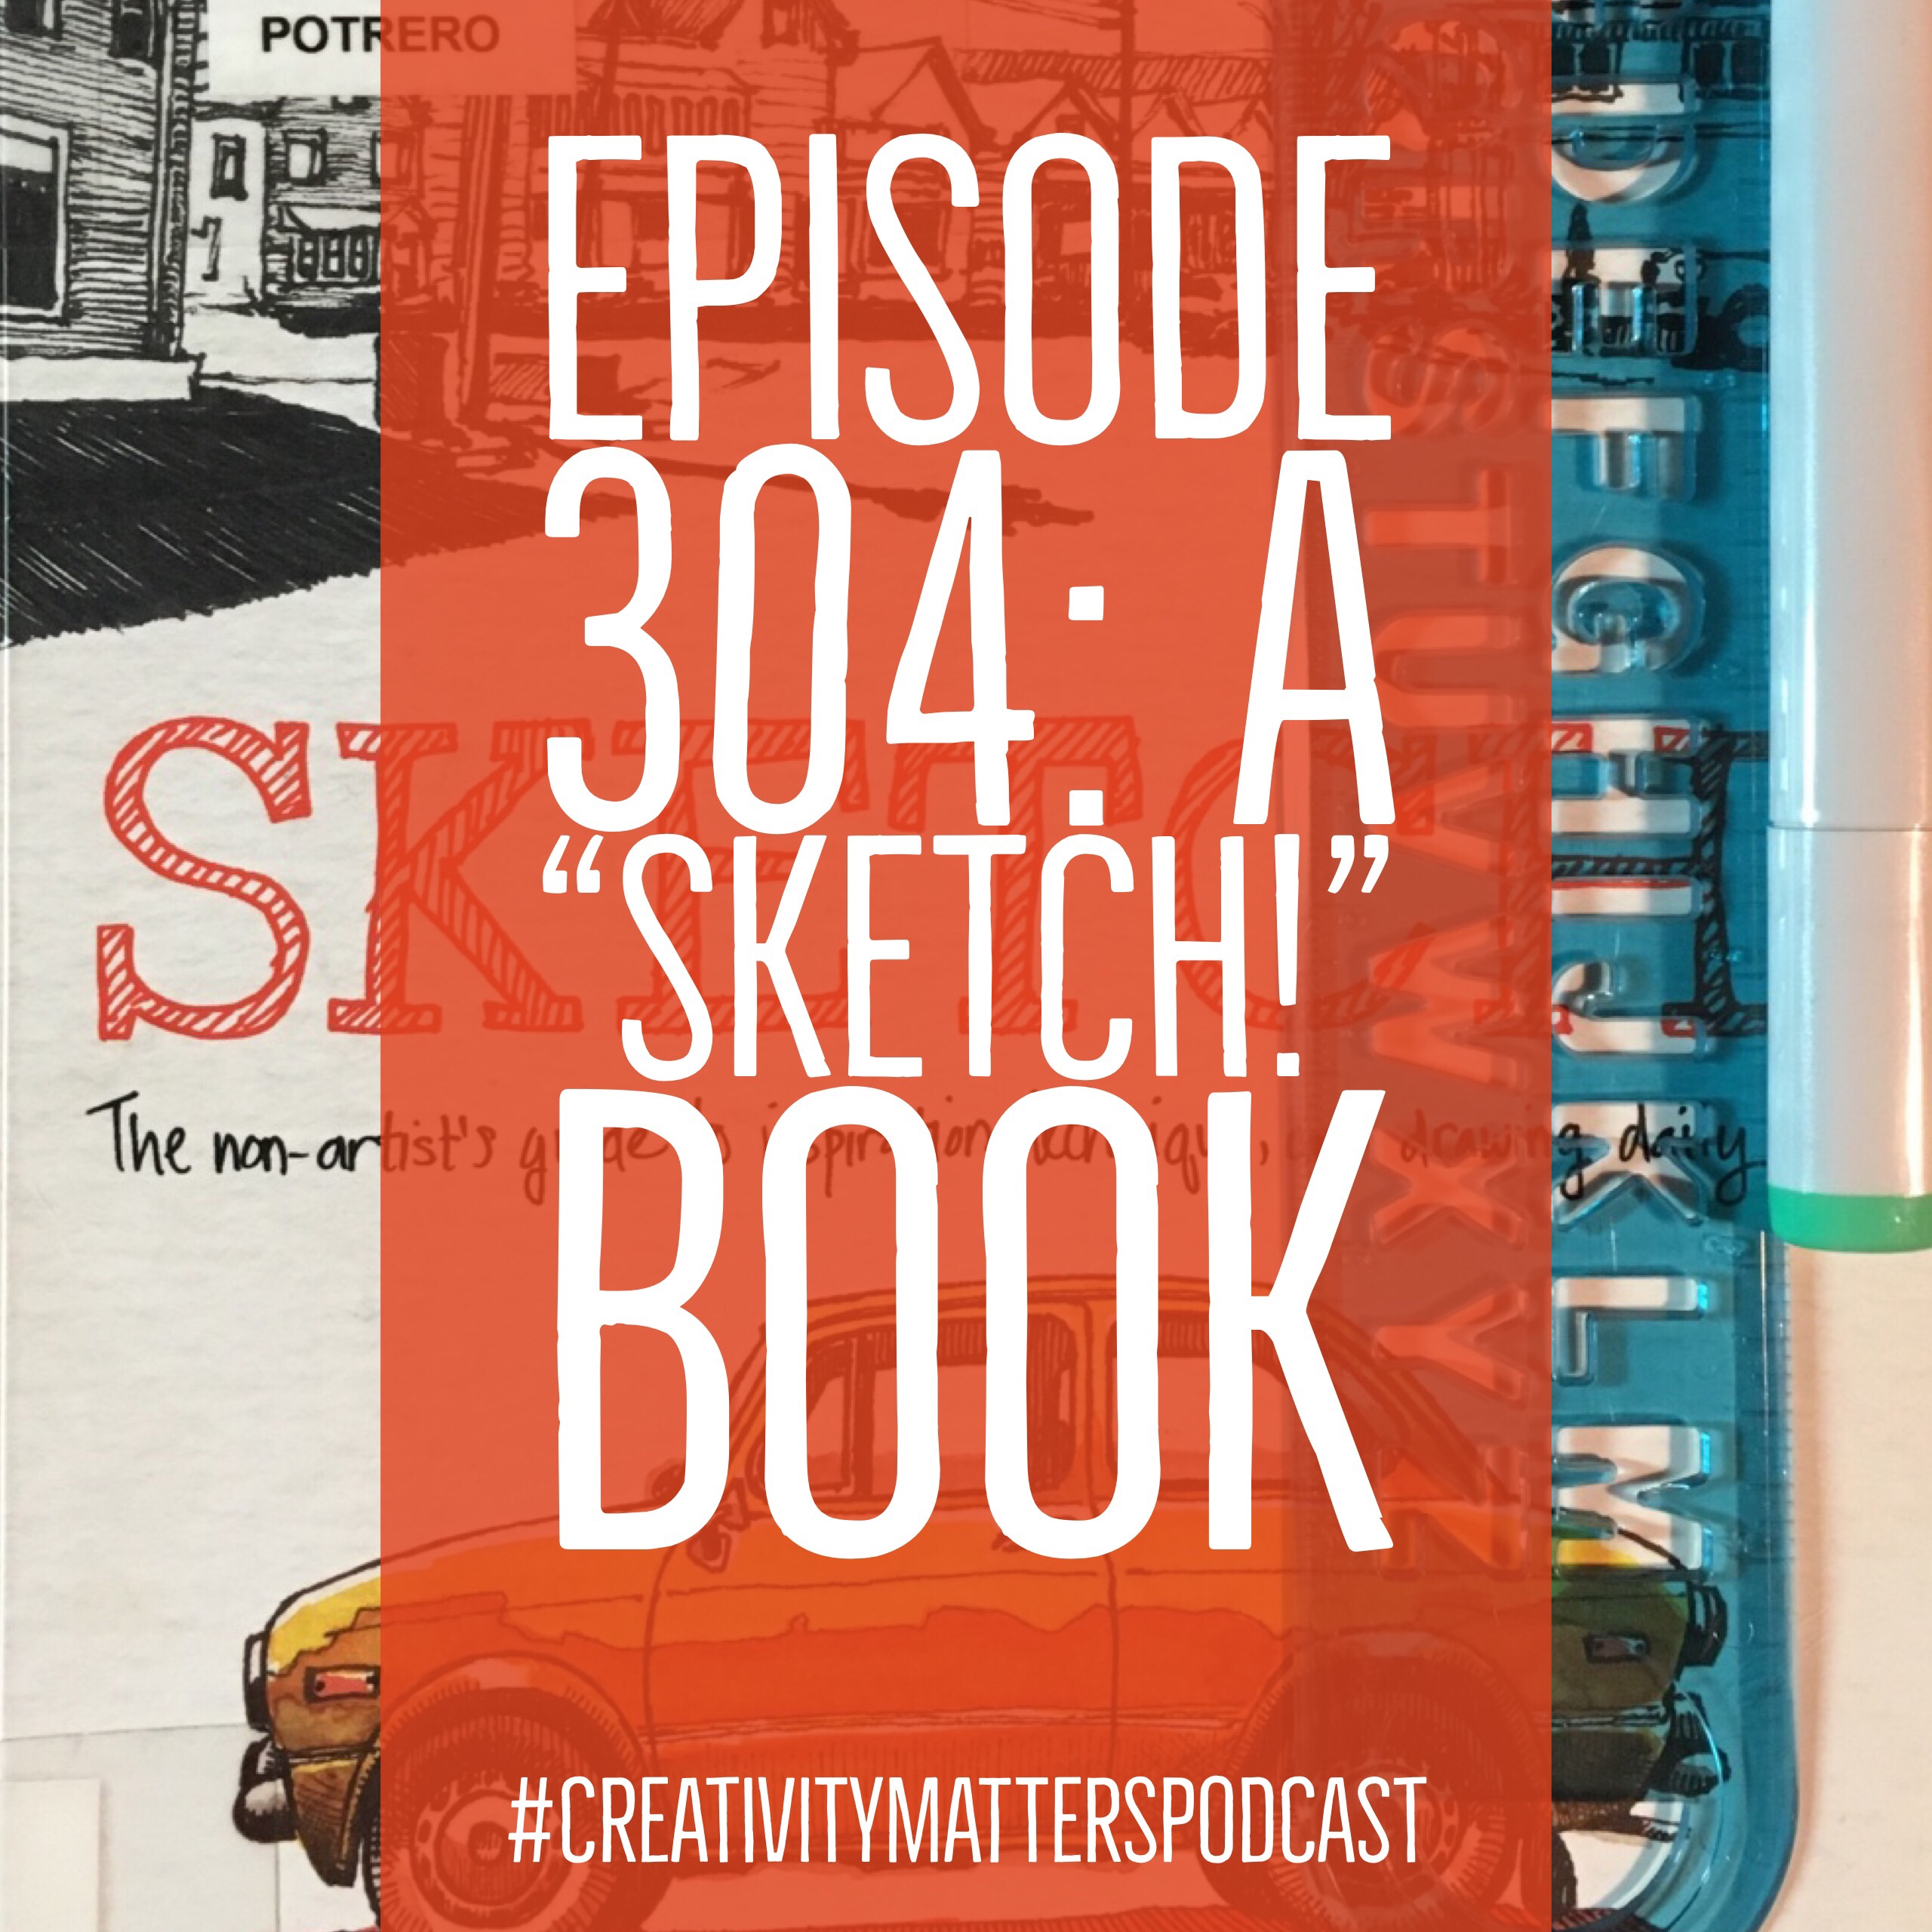 Episode 304: A Sketch! Book